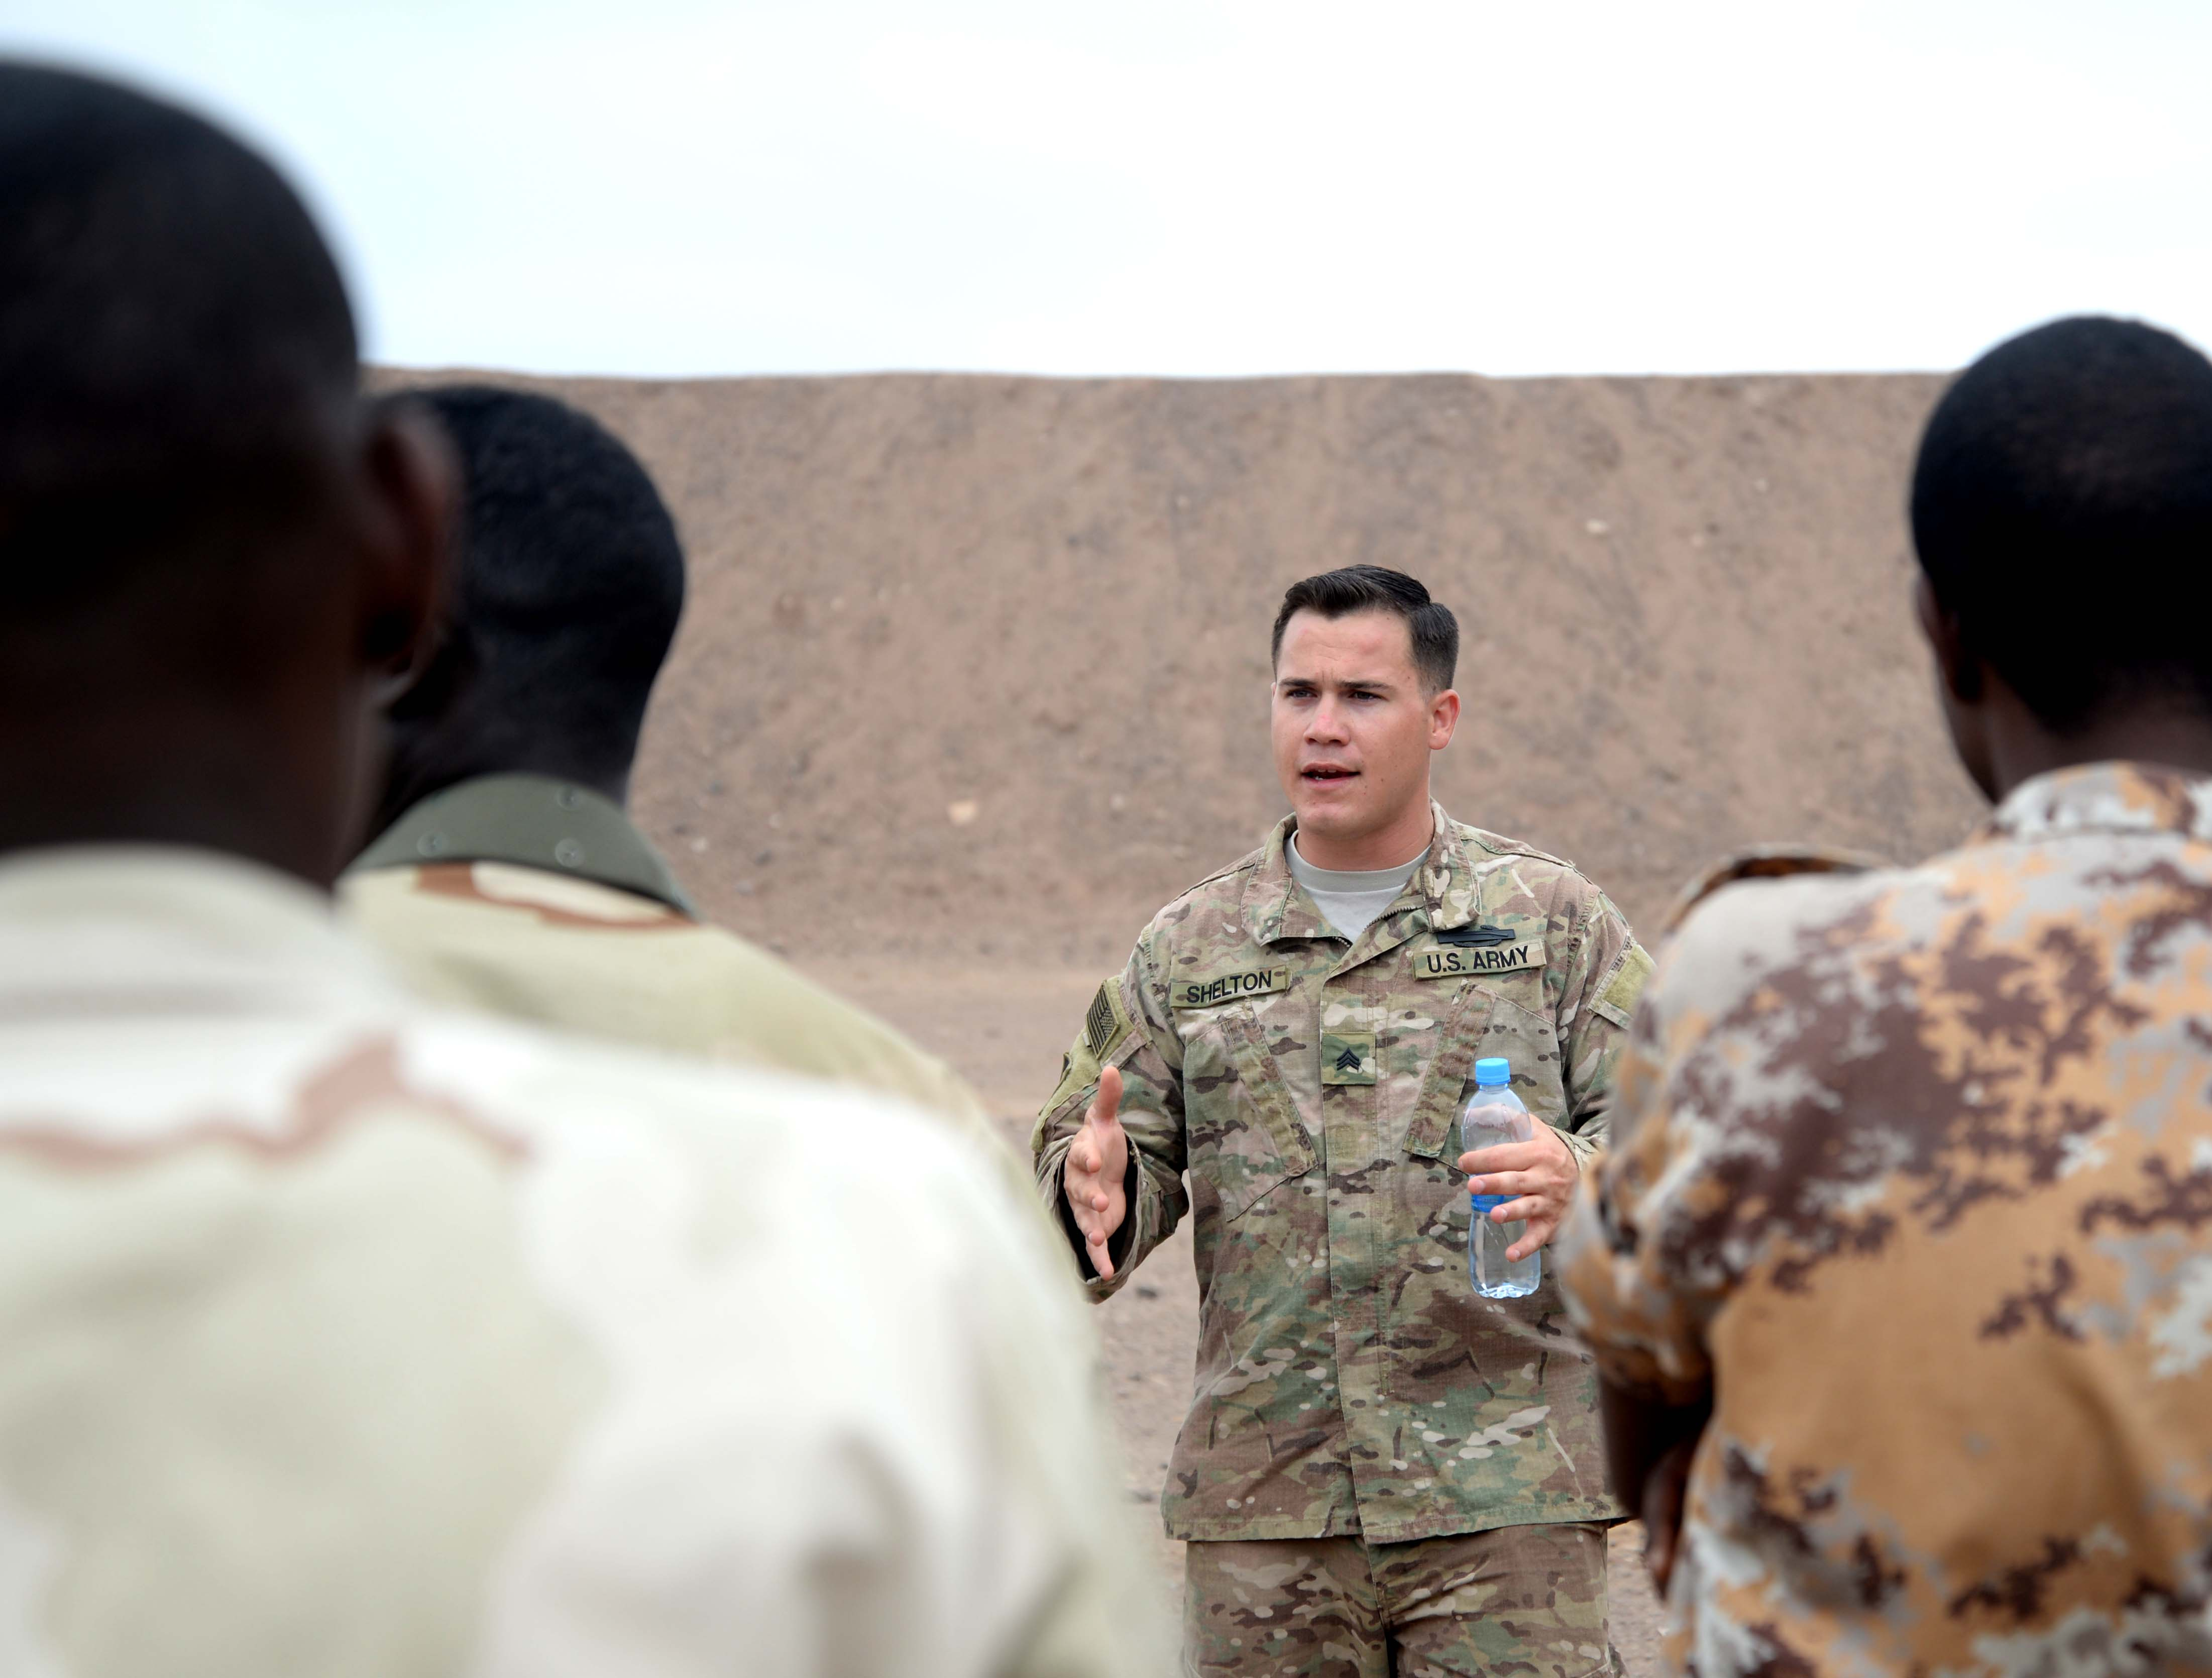 U.S. Army Sgt. Rob Shelton, Regionally Aligned Forces (RAF) instructor, speaks to members of the Djiboutian Armed Forces (FAD) March 10, 2016, before basic rifle marksman training at Arta range in Djibouti. Pairs of FAD soldiers carried a litter 100 meters before even picking up their weapon to increase their heart rate to simulate combat stress. (U.S. Air Force photo by Staff Sgt. Kate Thornton)